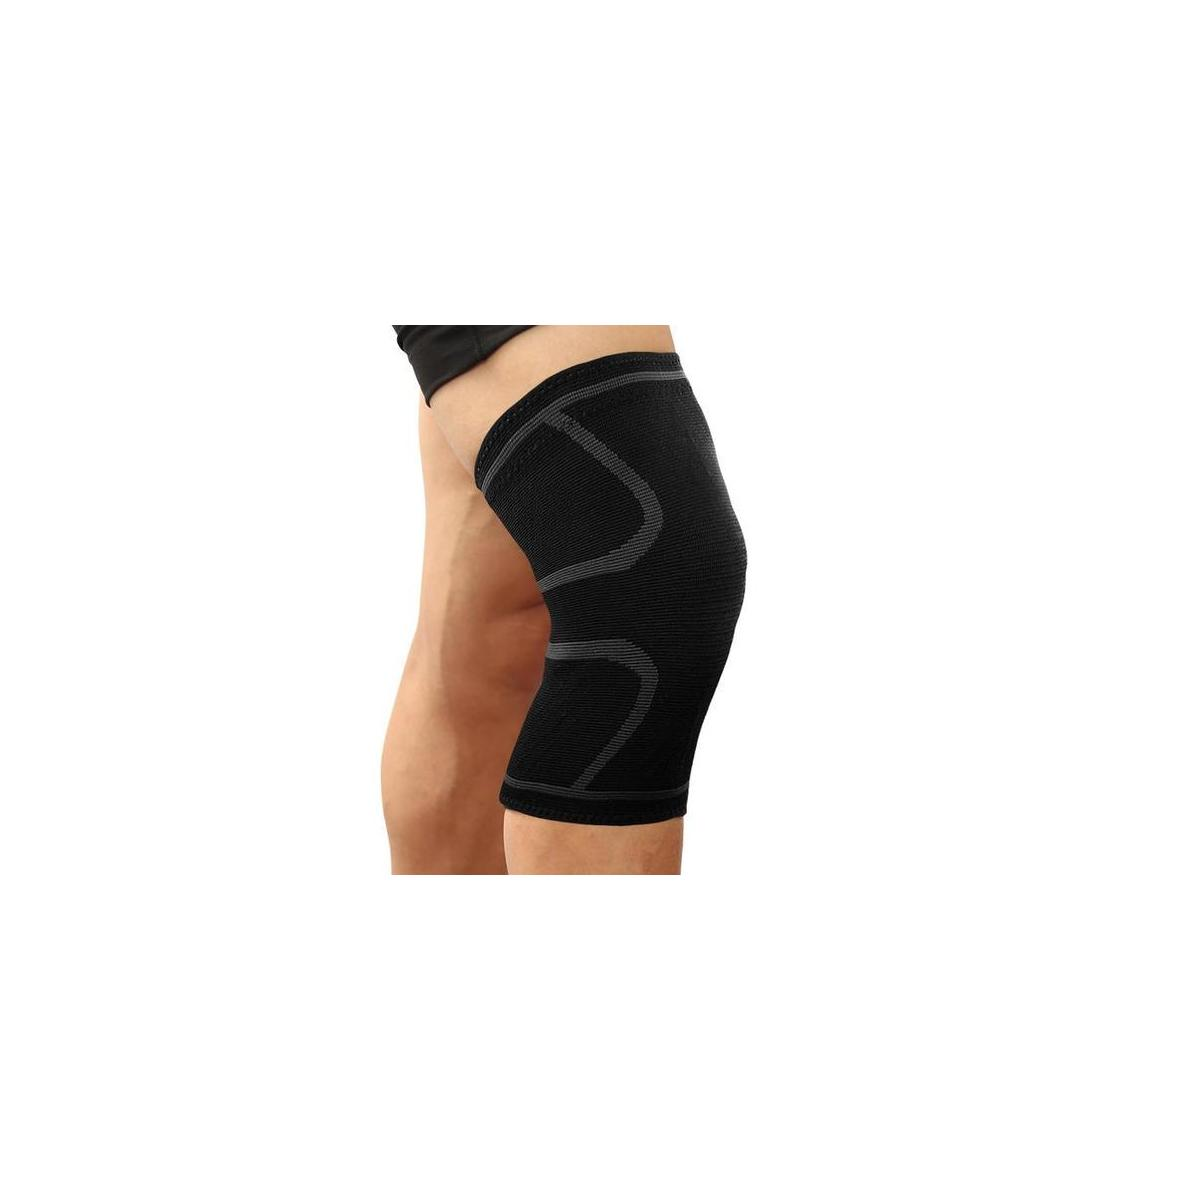 Non-Slip Knee Support Sleeve